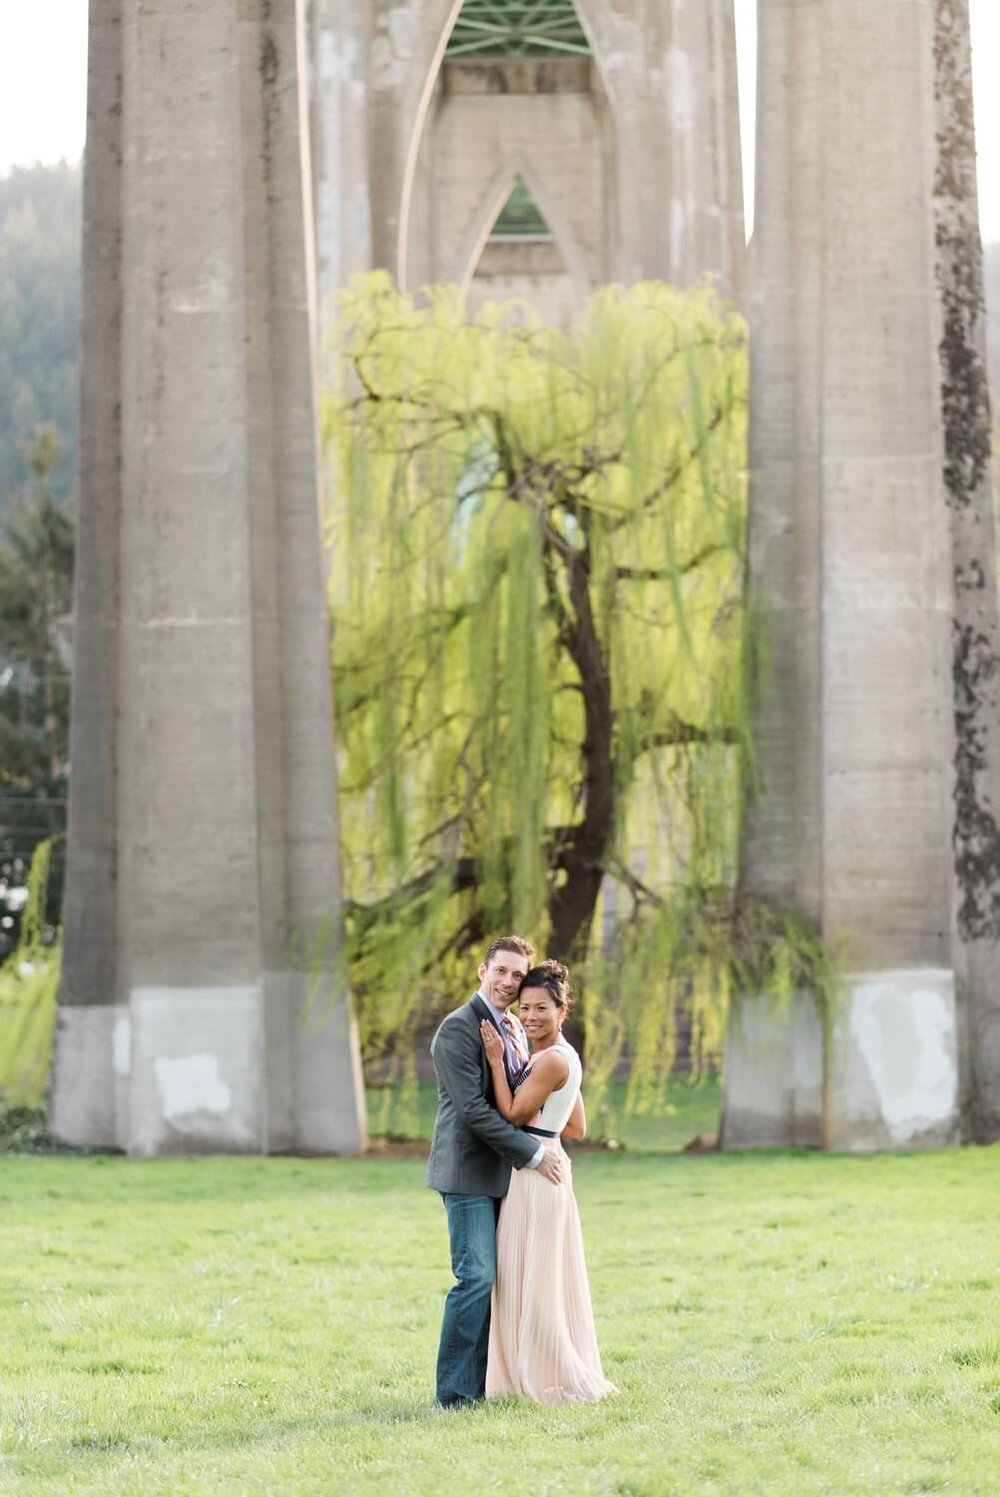 portland-waterfront-engagement-cherry-blossom-cathedral-park-sokhorn-jay-201_cr.jpg